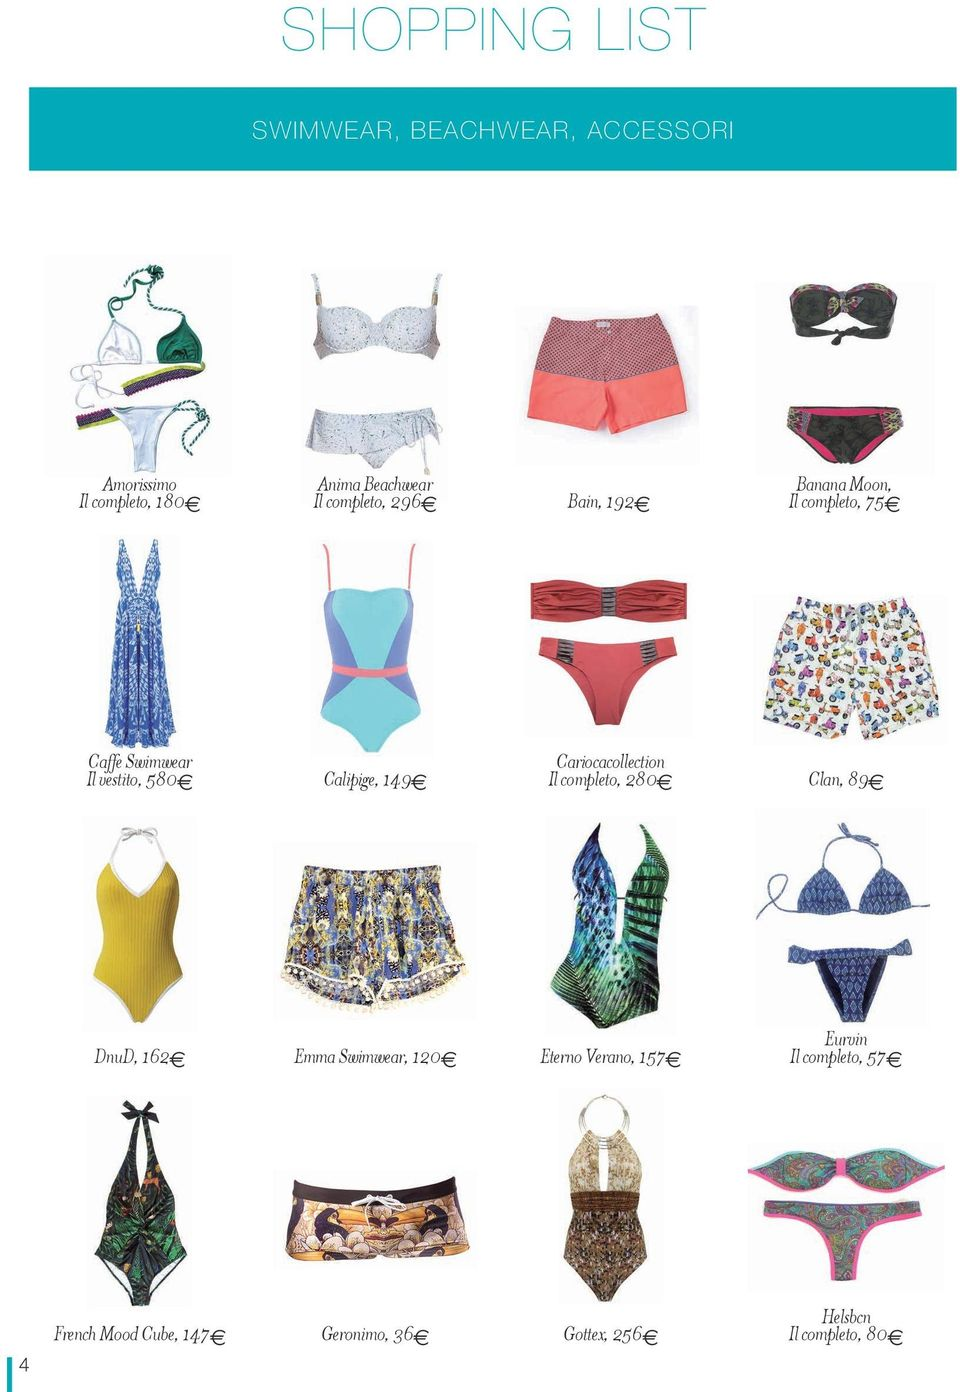 Cariocacollection Calipige, 149 Il completo, 280 Clan, 89 DnuD, 162 Emma Swimwear, 120 Eterno